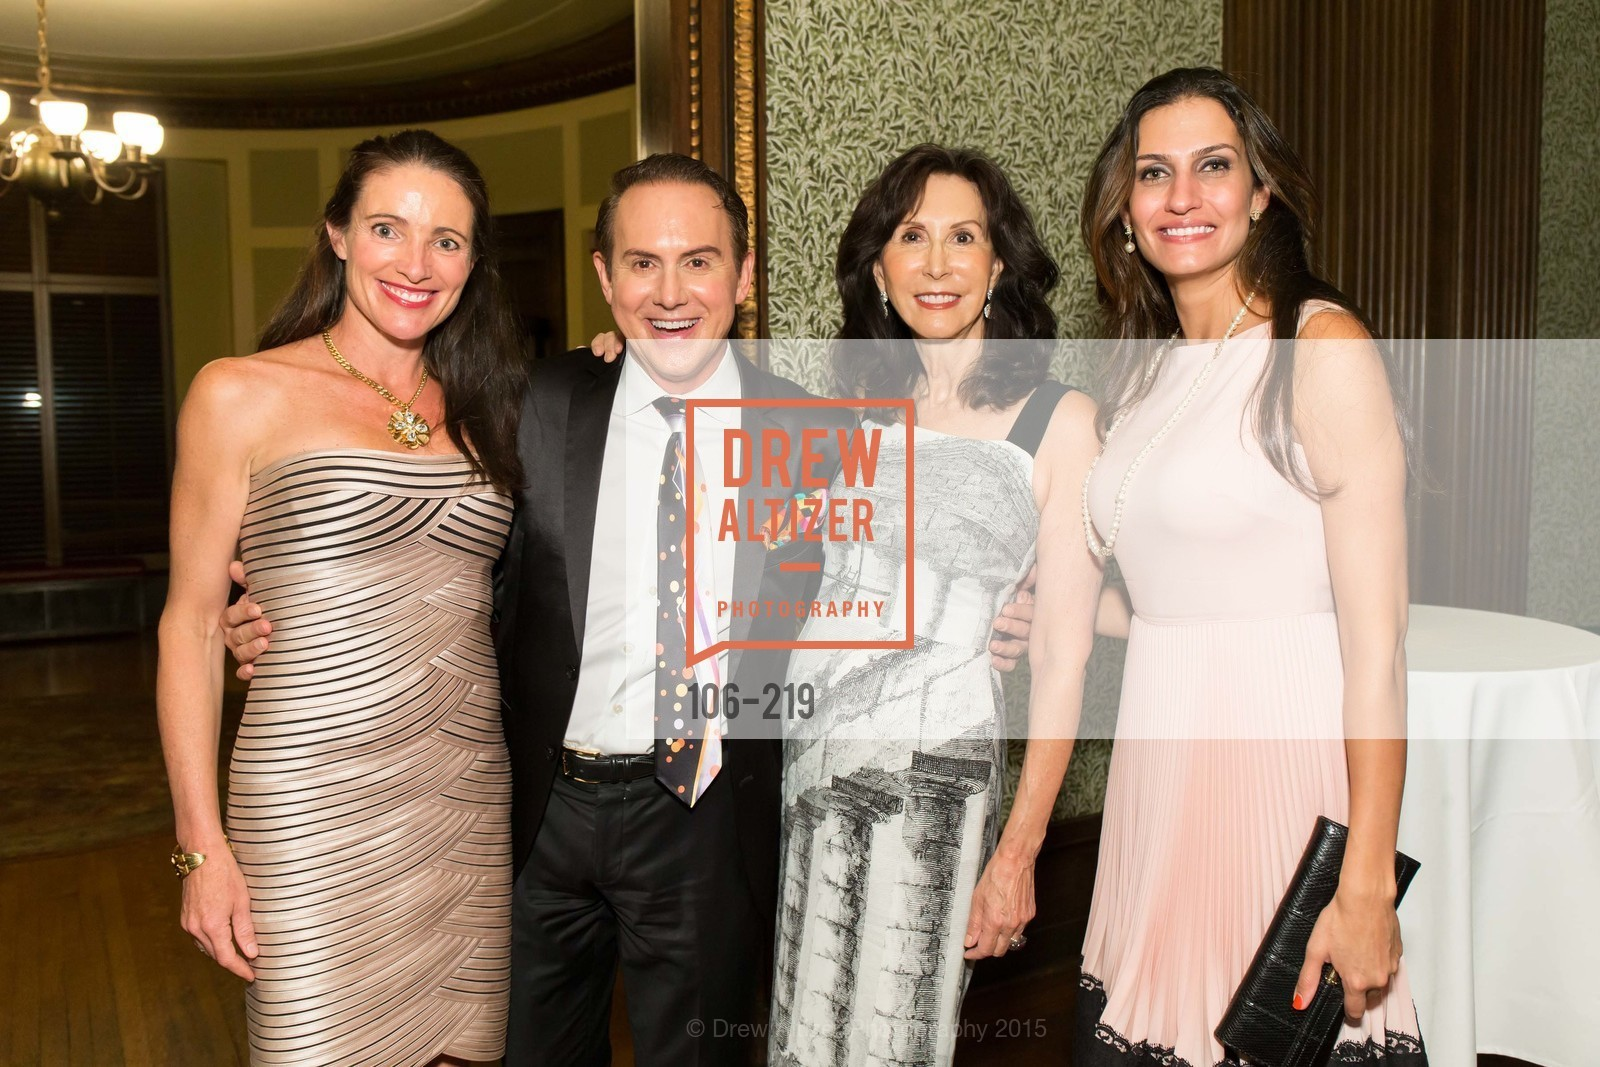 Anne Laury, Joel Goodrich, Carolyn Chandler, Leyla Alhosseini, Champagne Reception & Screening of Million Dollar Listing San Francisco, University Club. 800 Powell St, August 5th, 2015,Drew Altizer, Drew Altizer Photography, full-service agency, private events, San Francisco photographer, photographer california